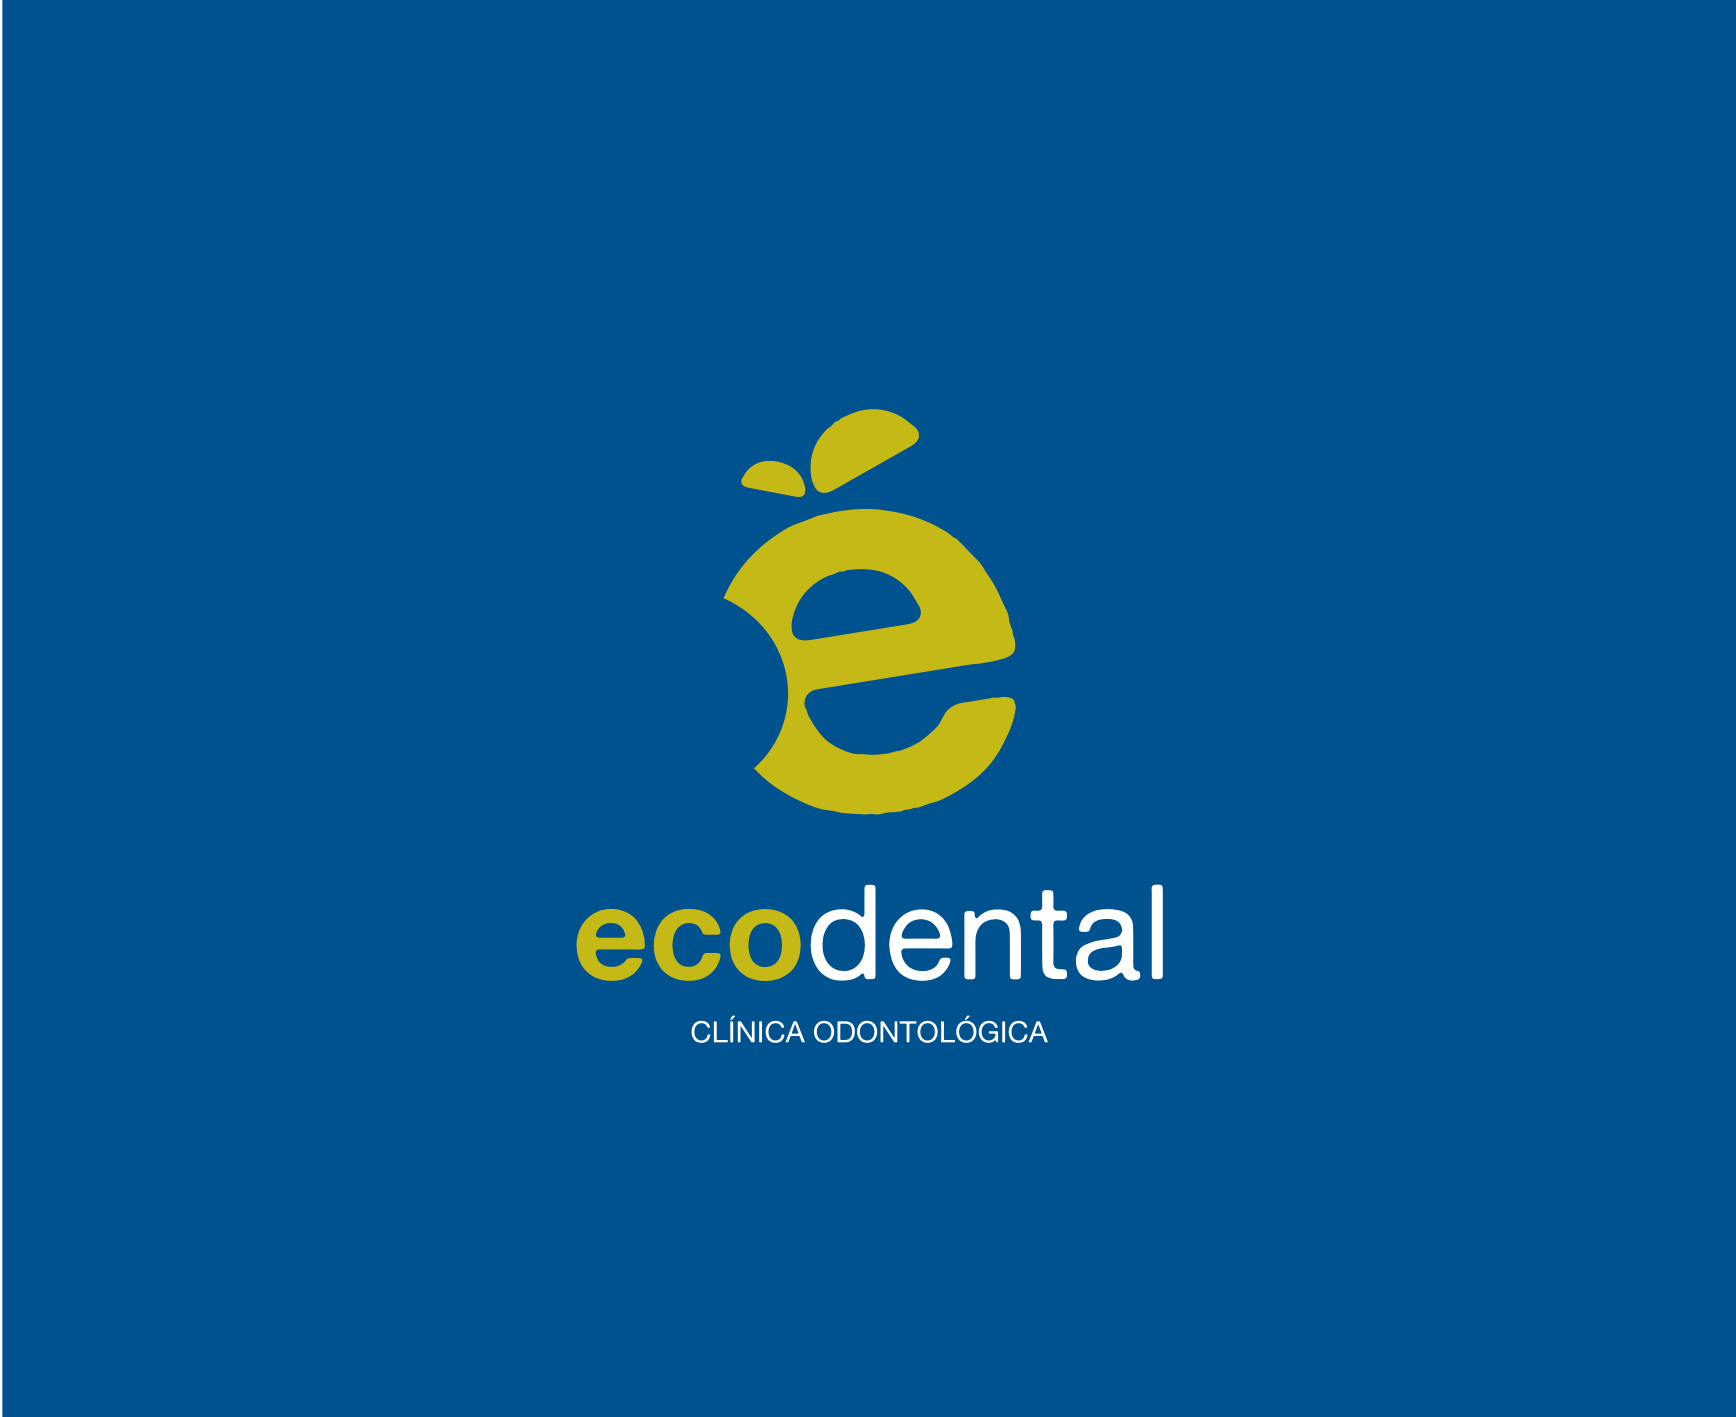 Ecodental